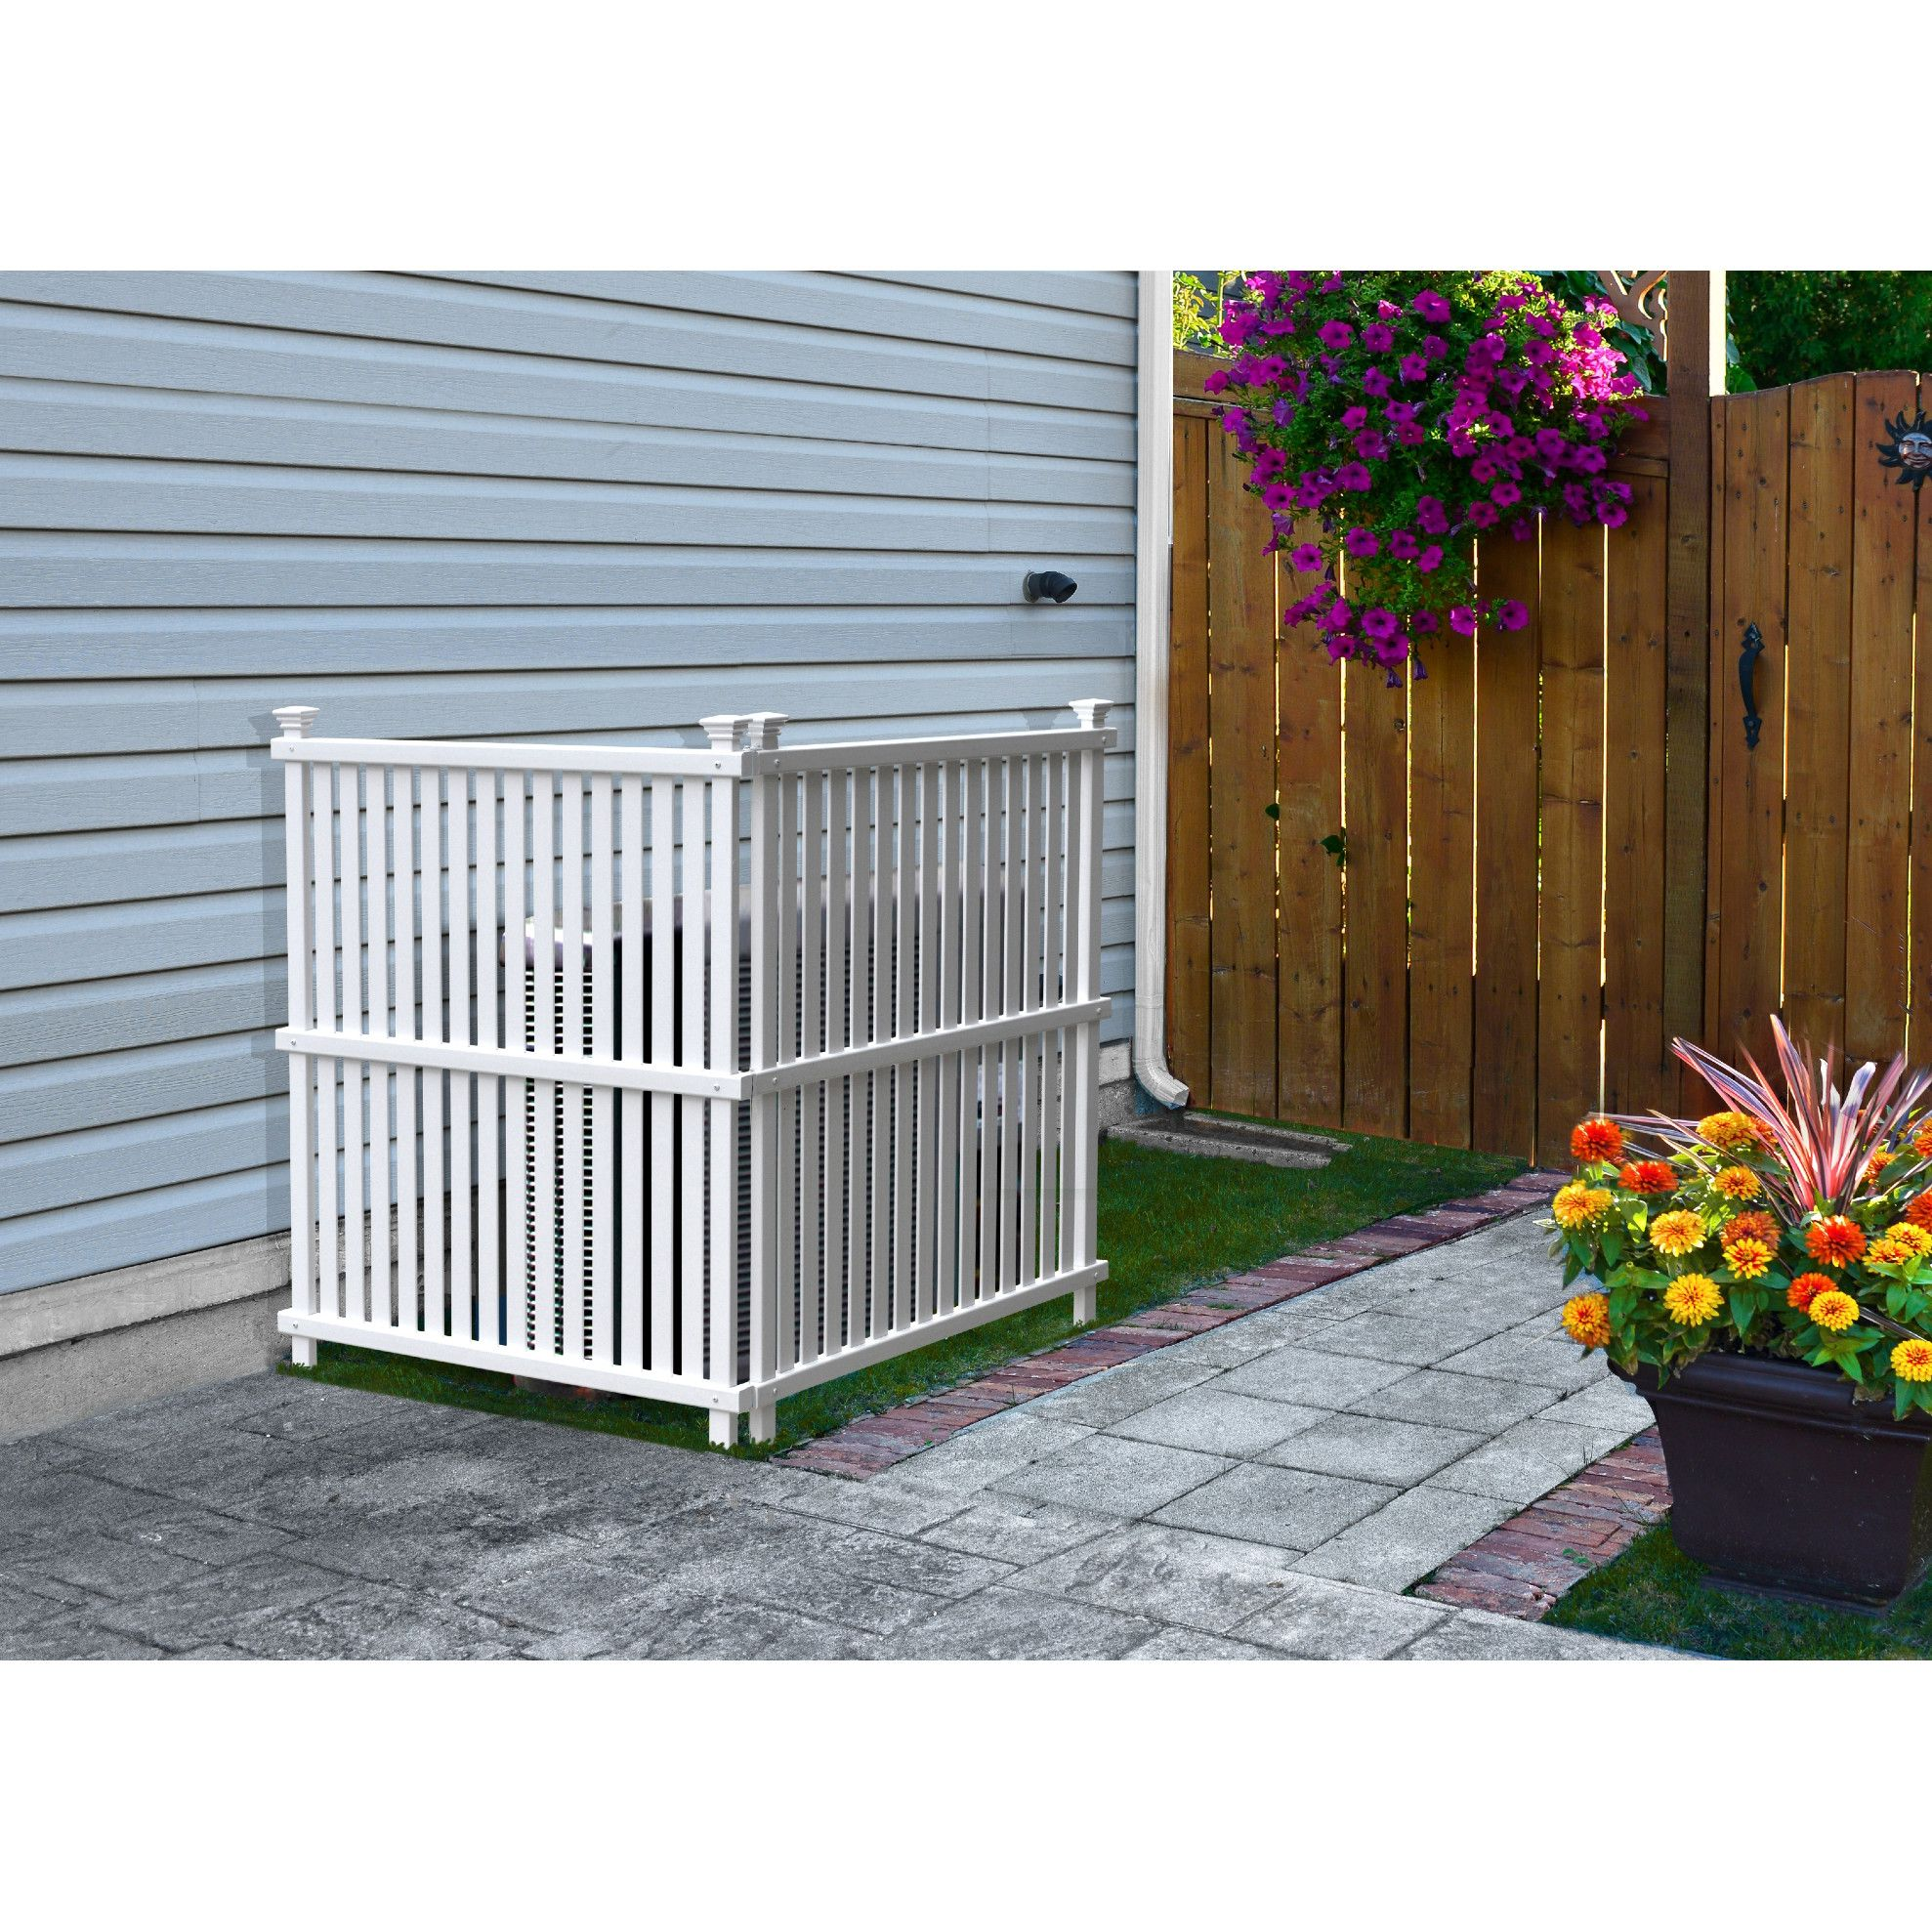 4 ft. H x 3 ft. W Wilmington Privacy Screen Outdoor